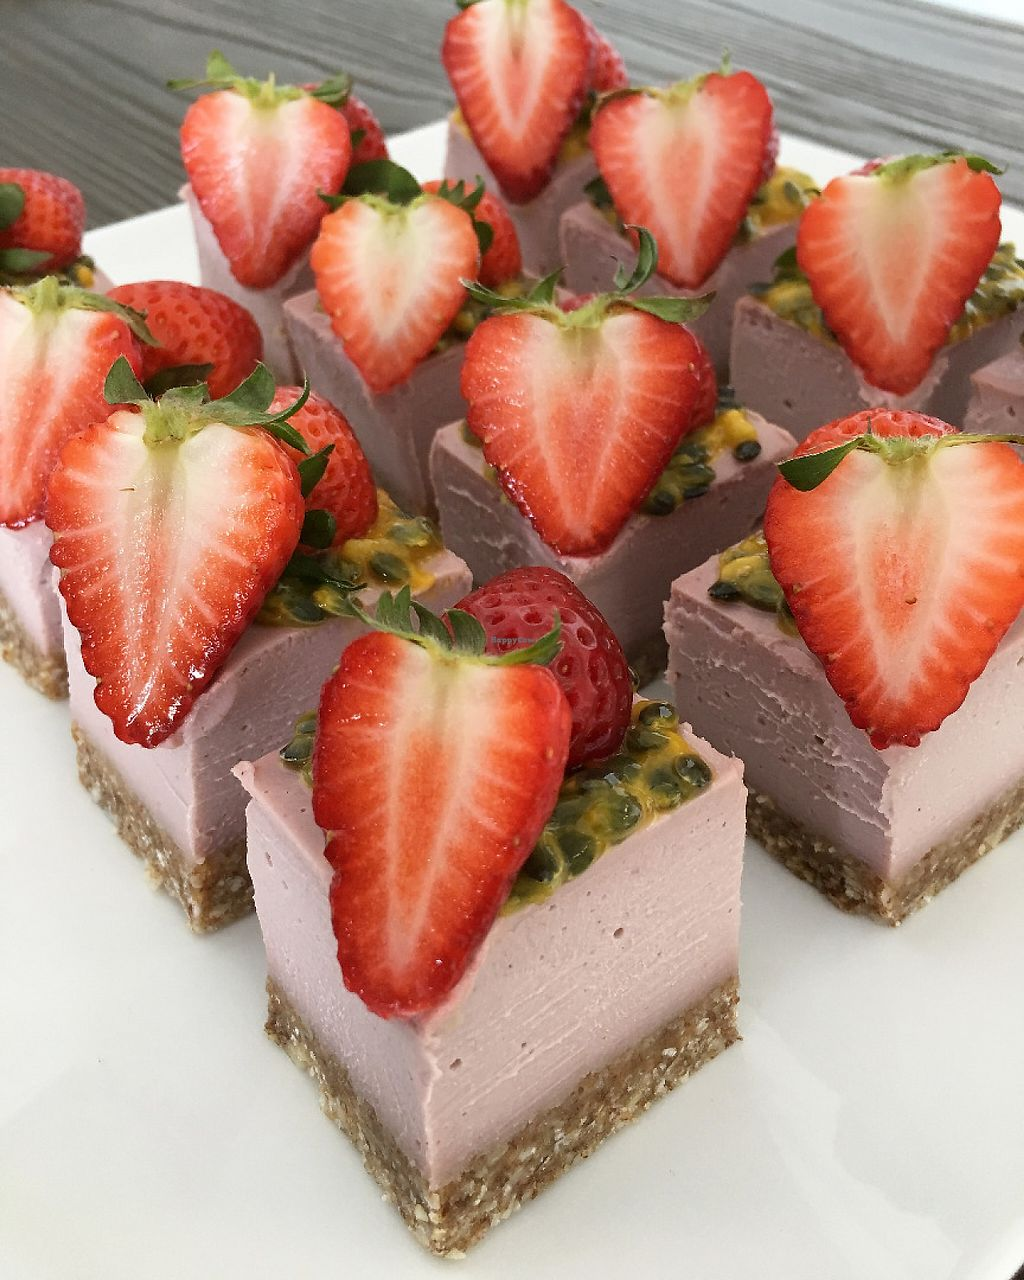 "Photo of RawLove Superfoods  by <a href=""/members/profile/RawLoveSuperfoods"">RawLoveSuperfoods</a> <br/>Raw Organic Strawberry Mousse Cake <br/> May 15, 2017  - <a href='/contact/abuse/image/92222/259163'>Report</a>"